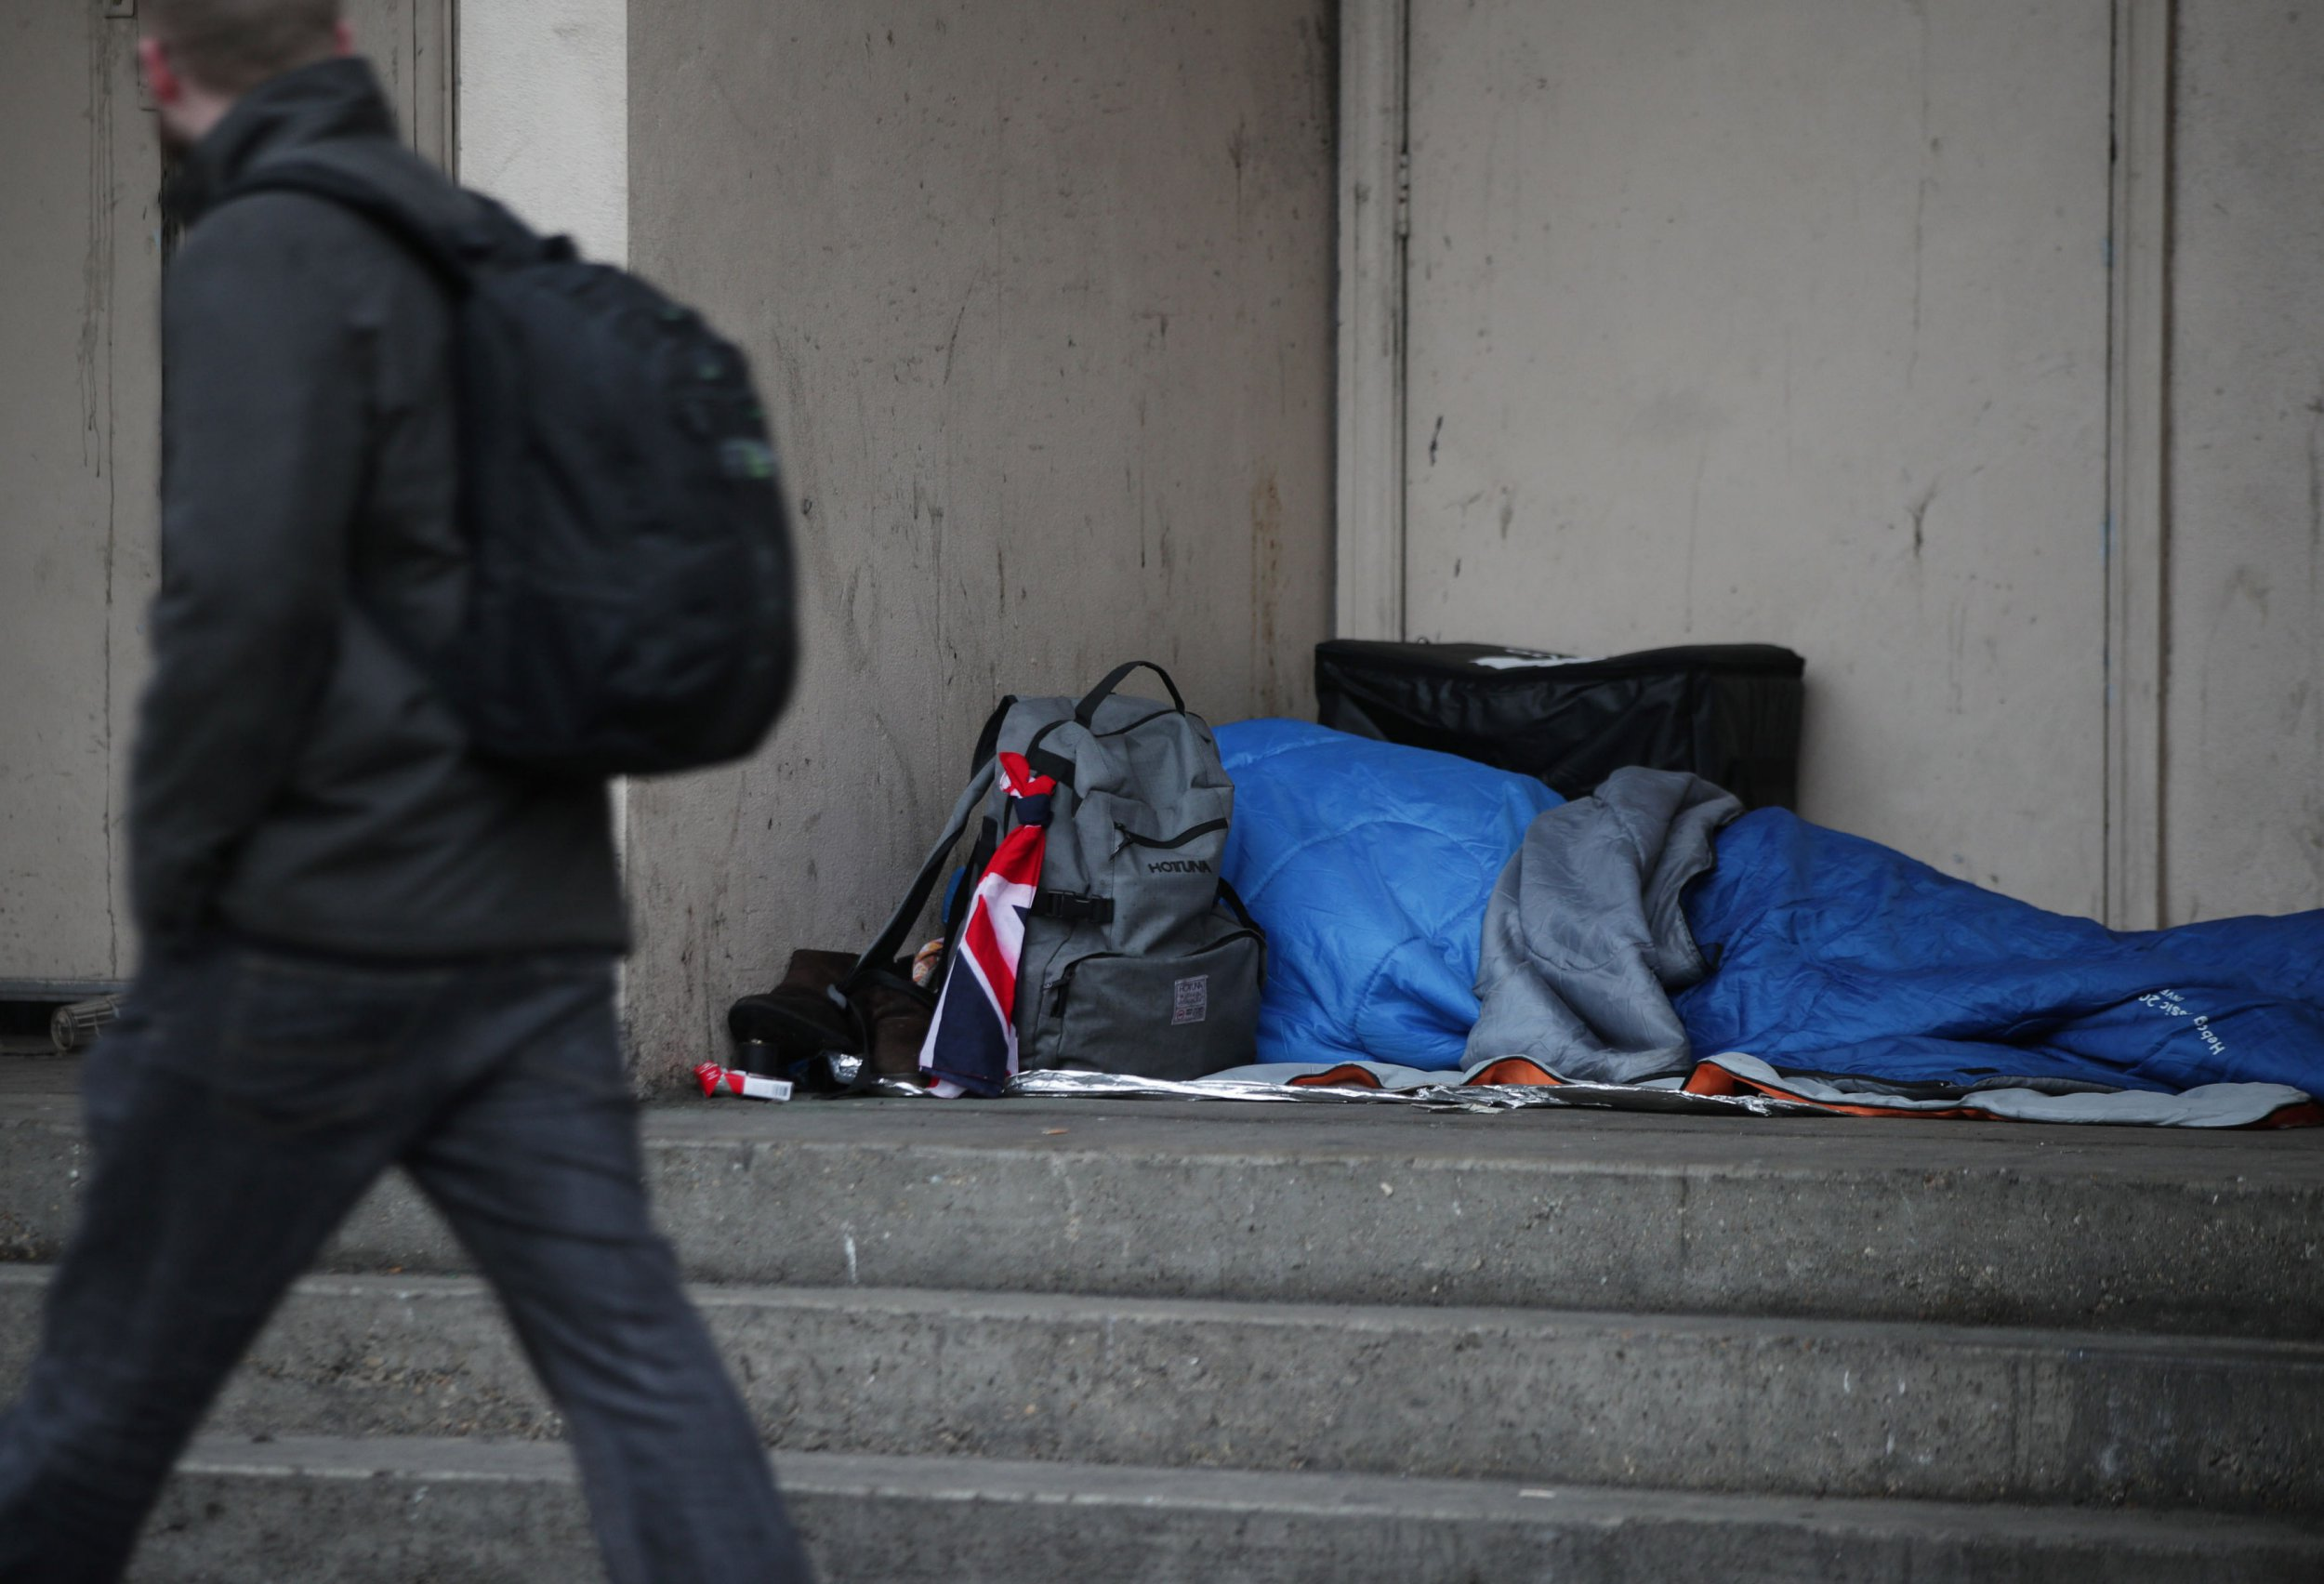 Rough sleeper unlawfully held for over a month in detention centre awarded £15,000